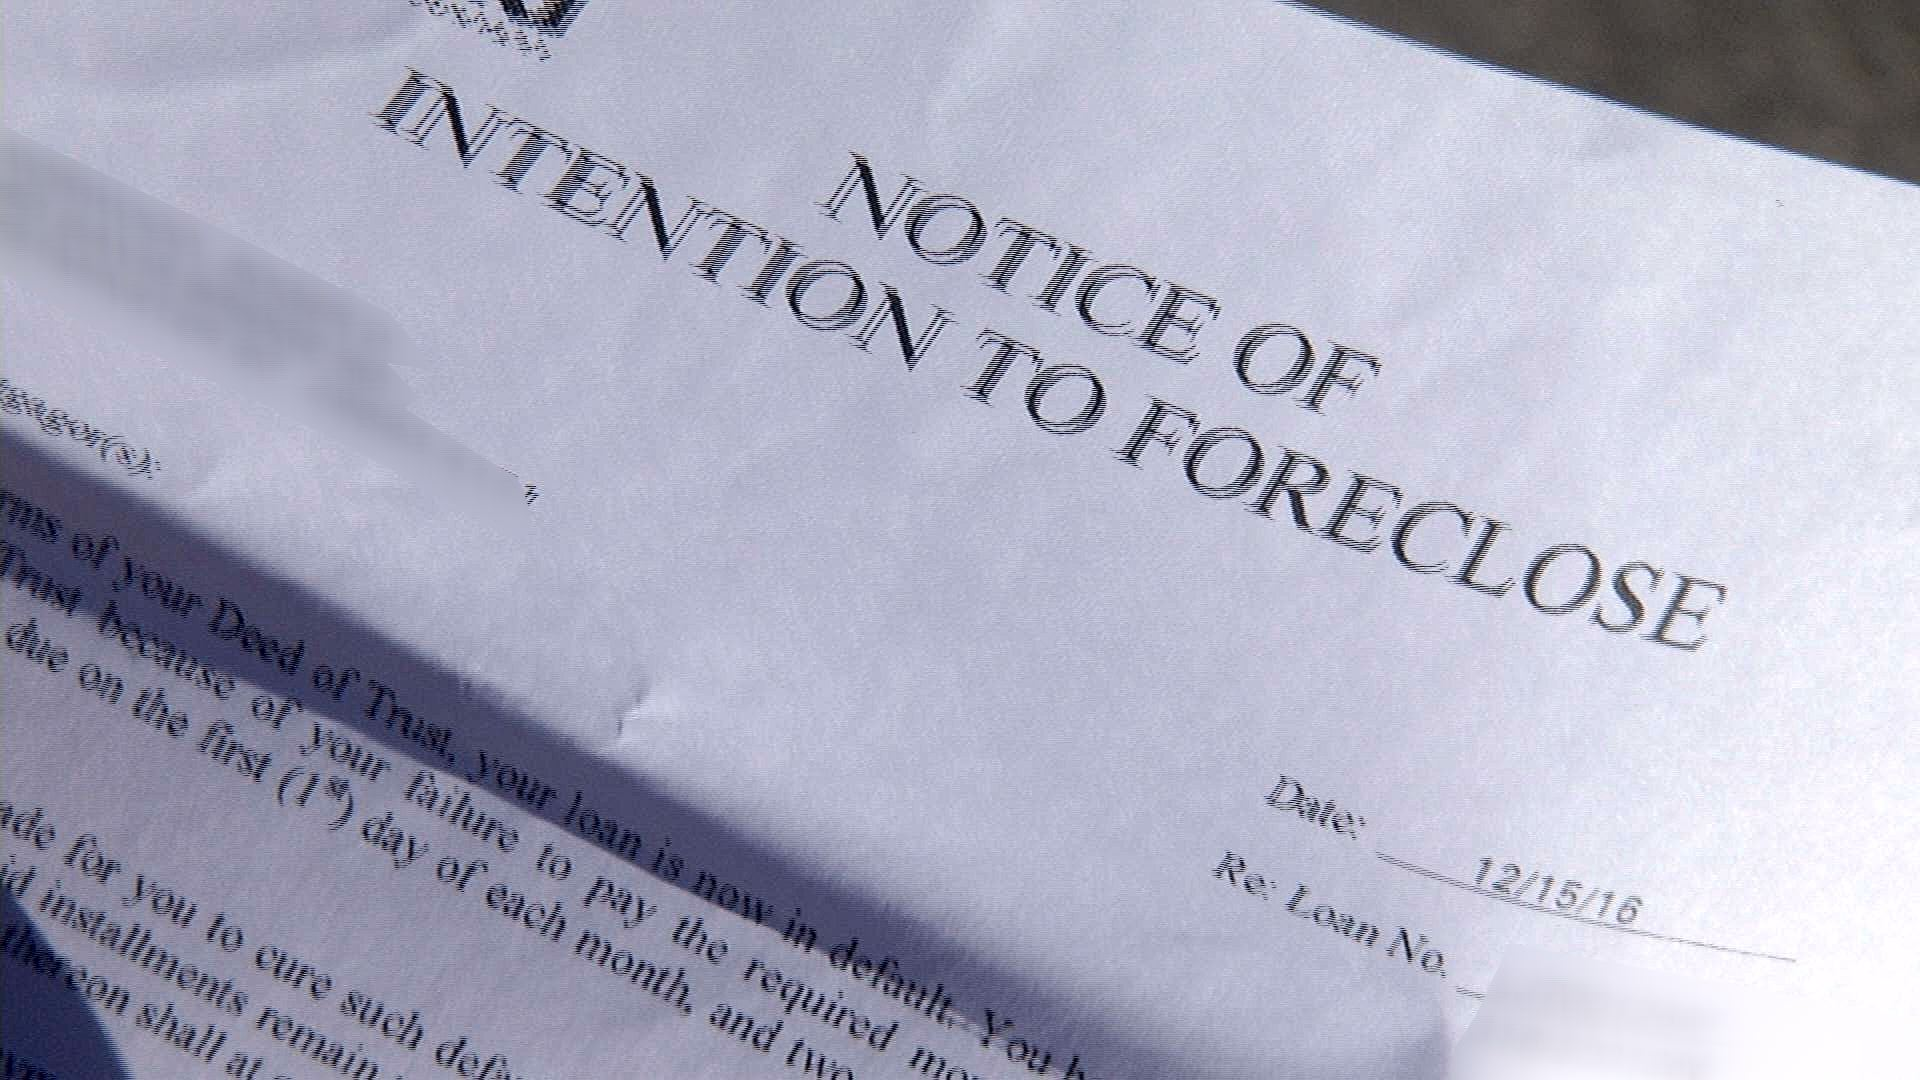 NOTICE OF INTENTION TO FORECLOSE_343020